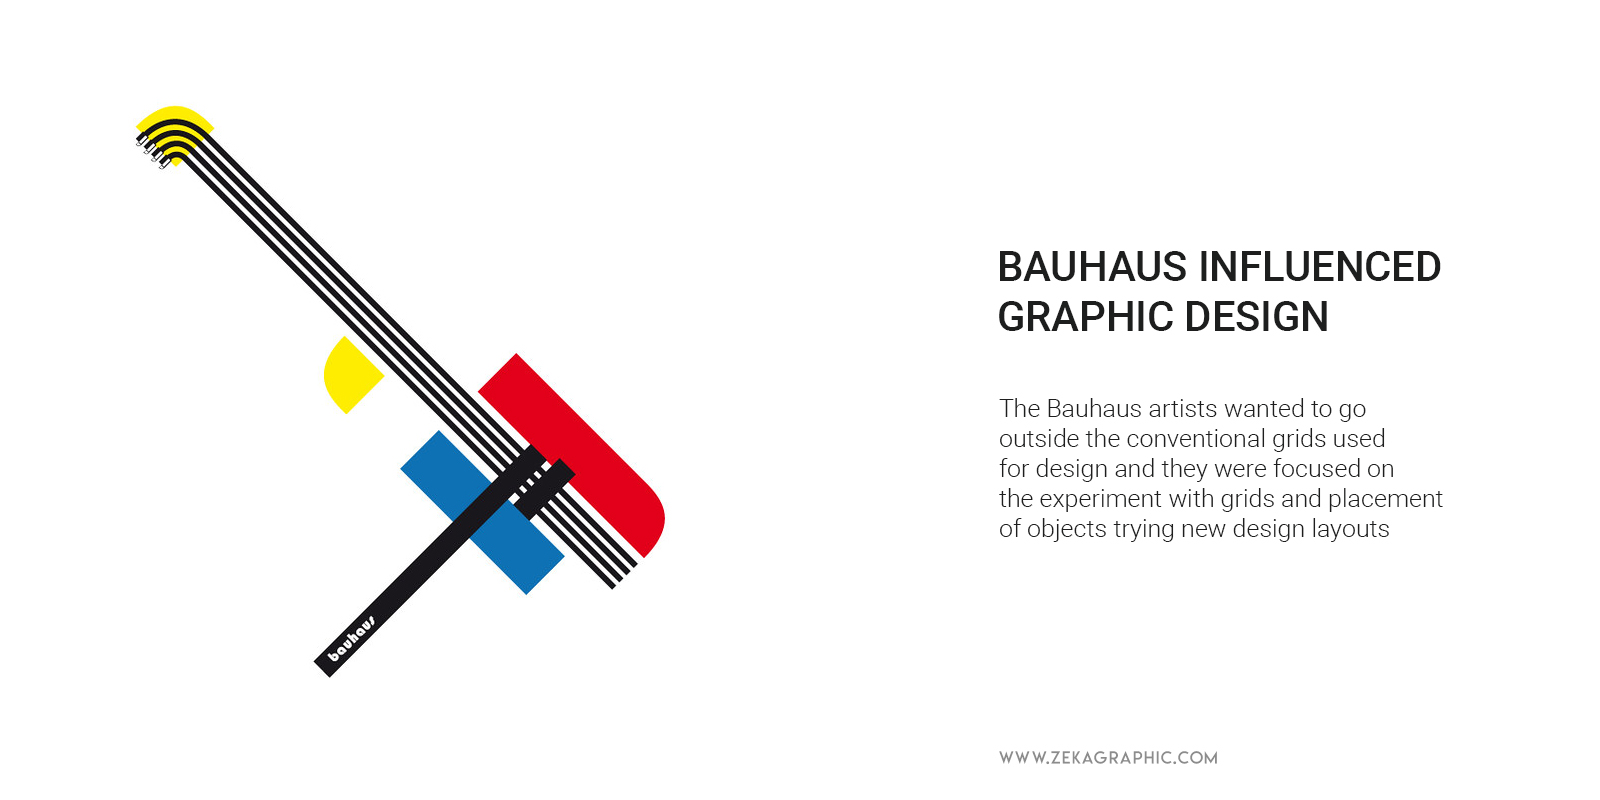 How Bauhaus influenced Graphic Design Experimental Grid Layouts